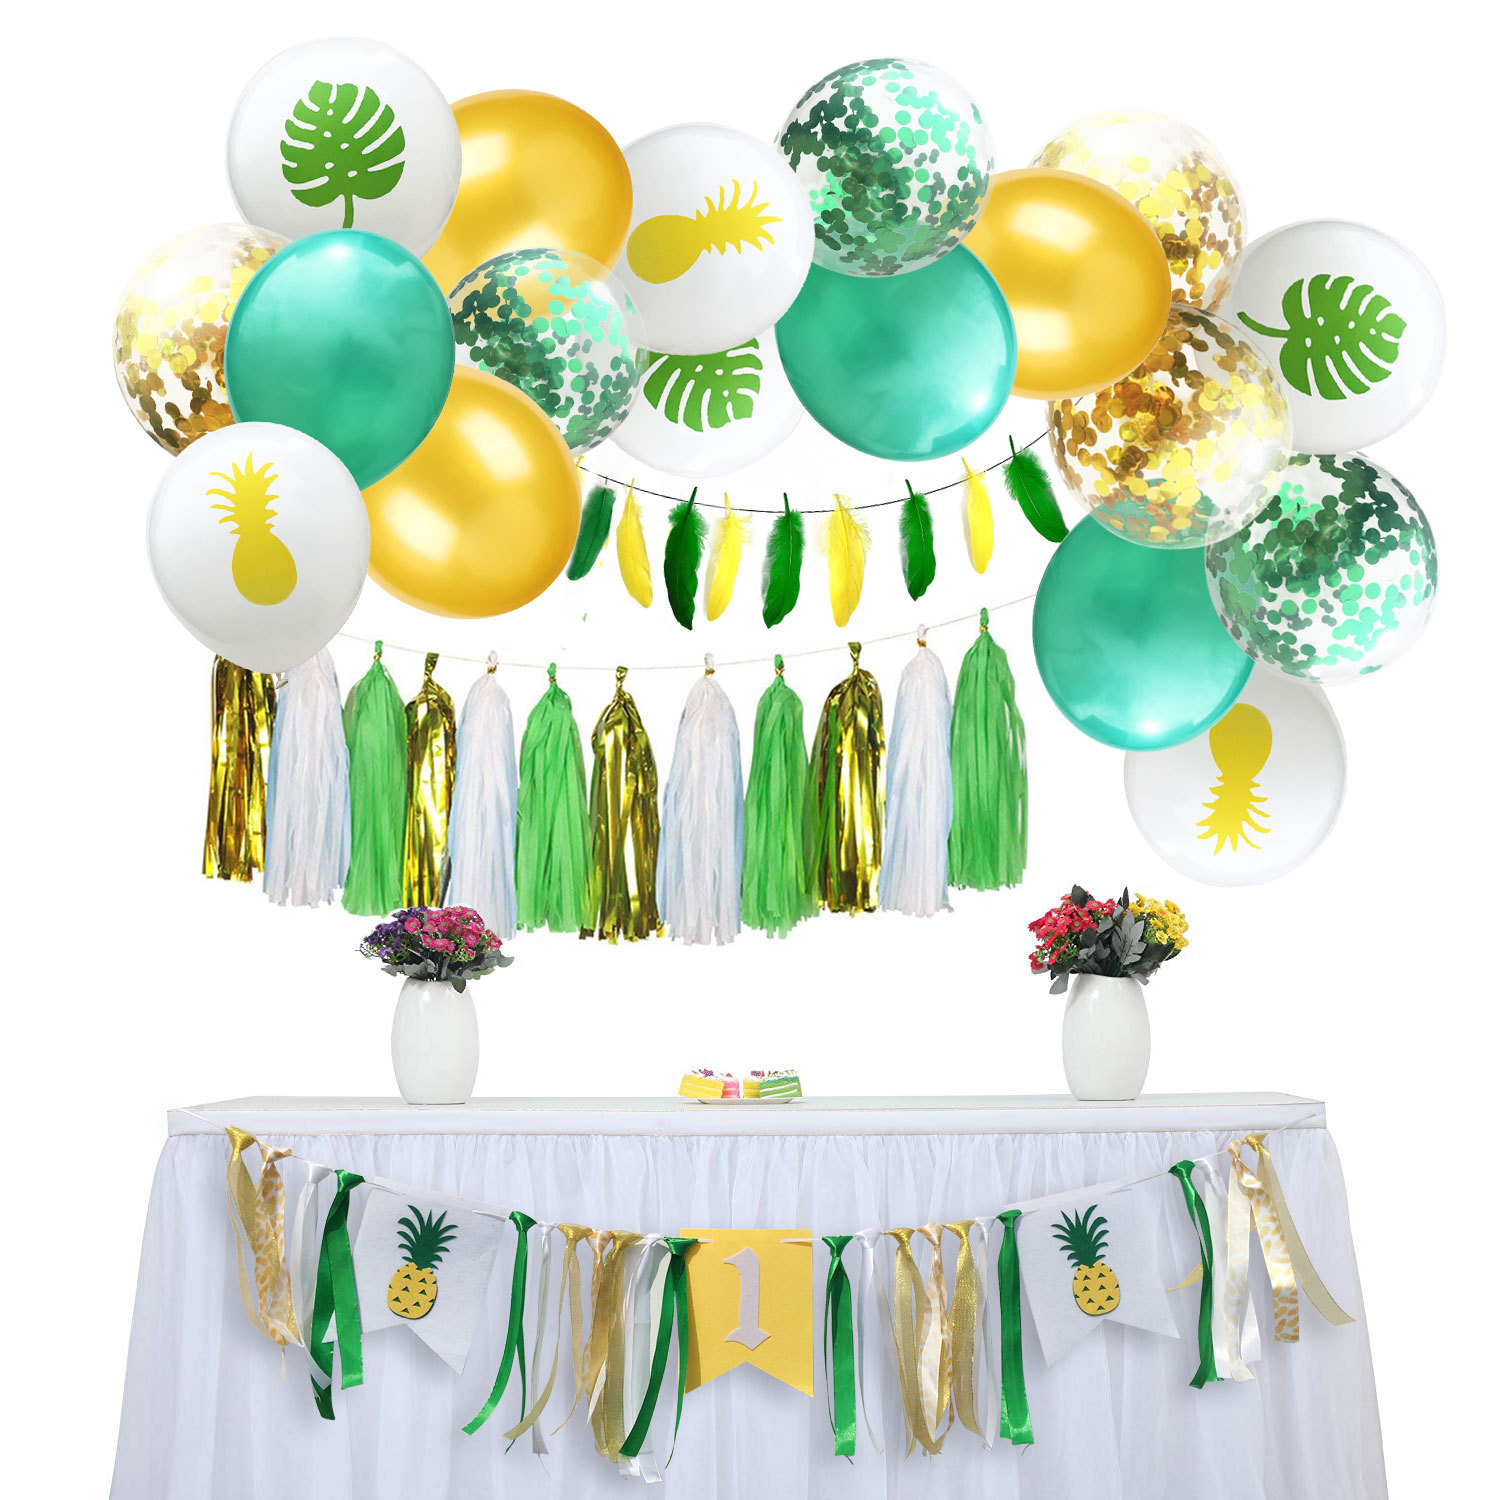 Hawaiian Party Decorations Non Woven Pineapple Turtle Banner Balloon Set For 1st Birthday Party Decorated With Sequin Balloons Annual Balloon Festival